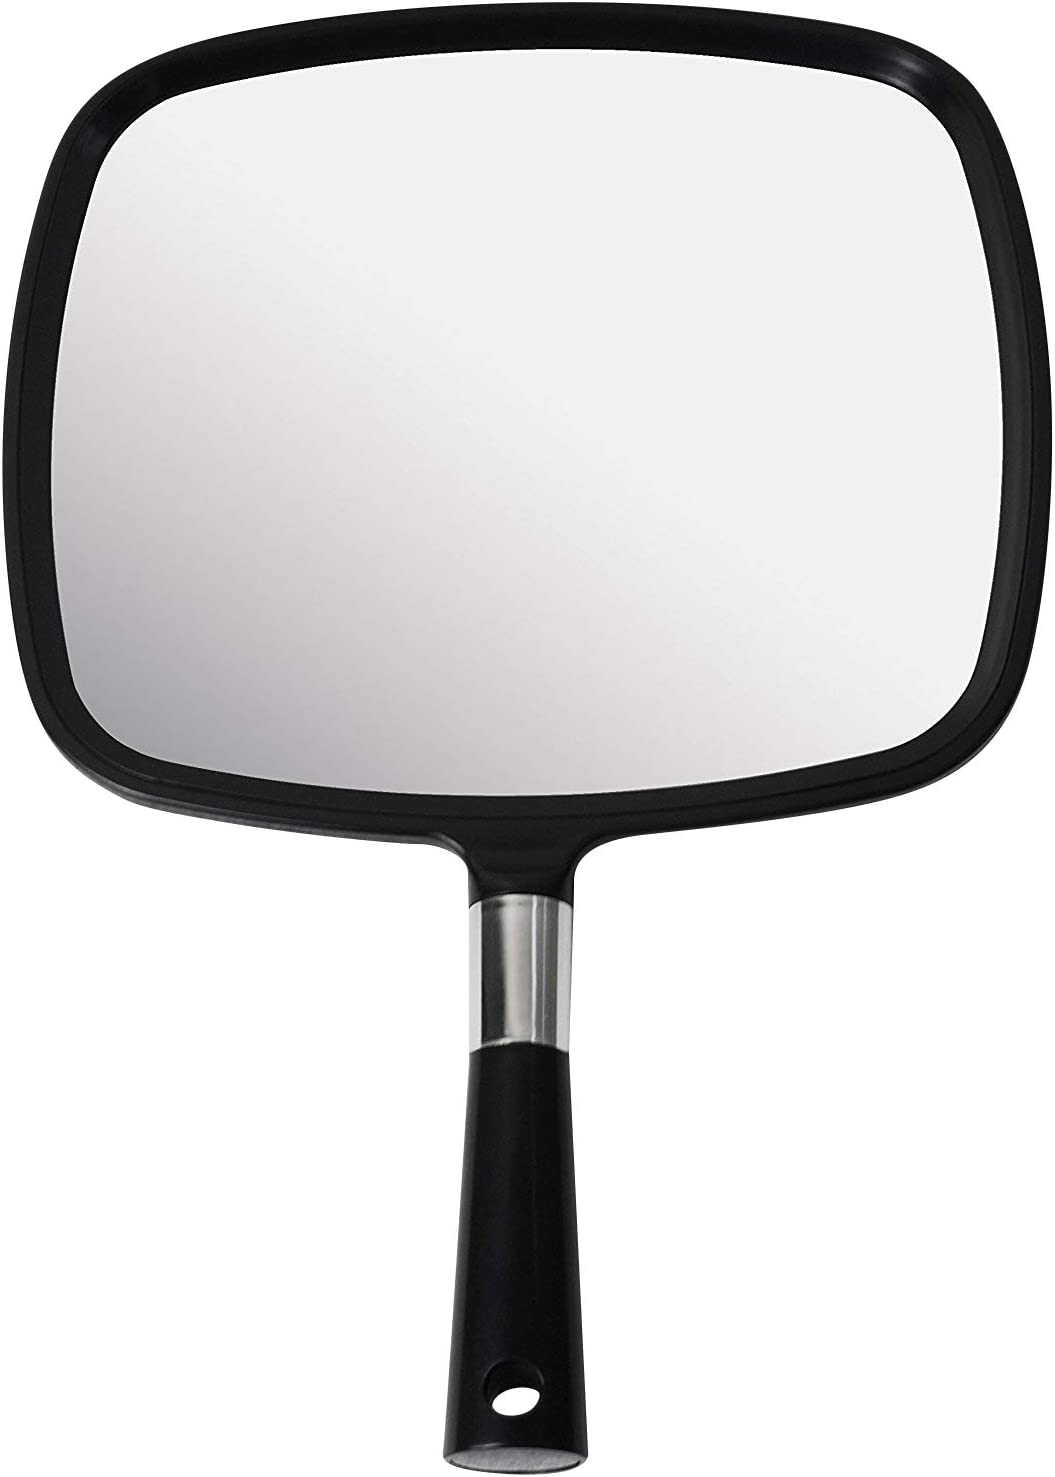 Mirrorvana Large Comfy Hand Held Mirror with Handle – Barber Model in Black 1-Pack